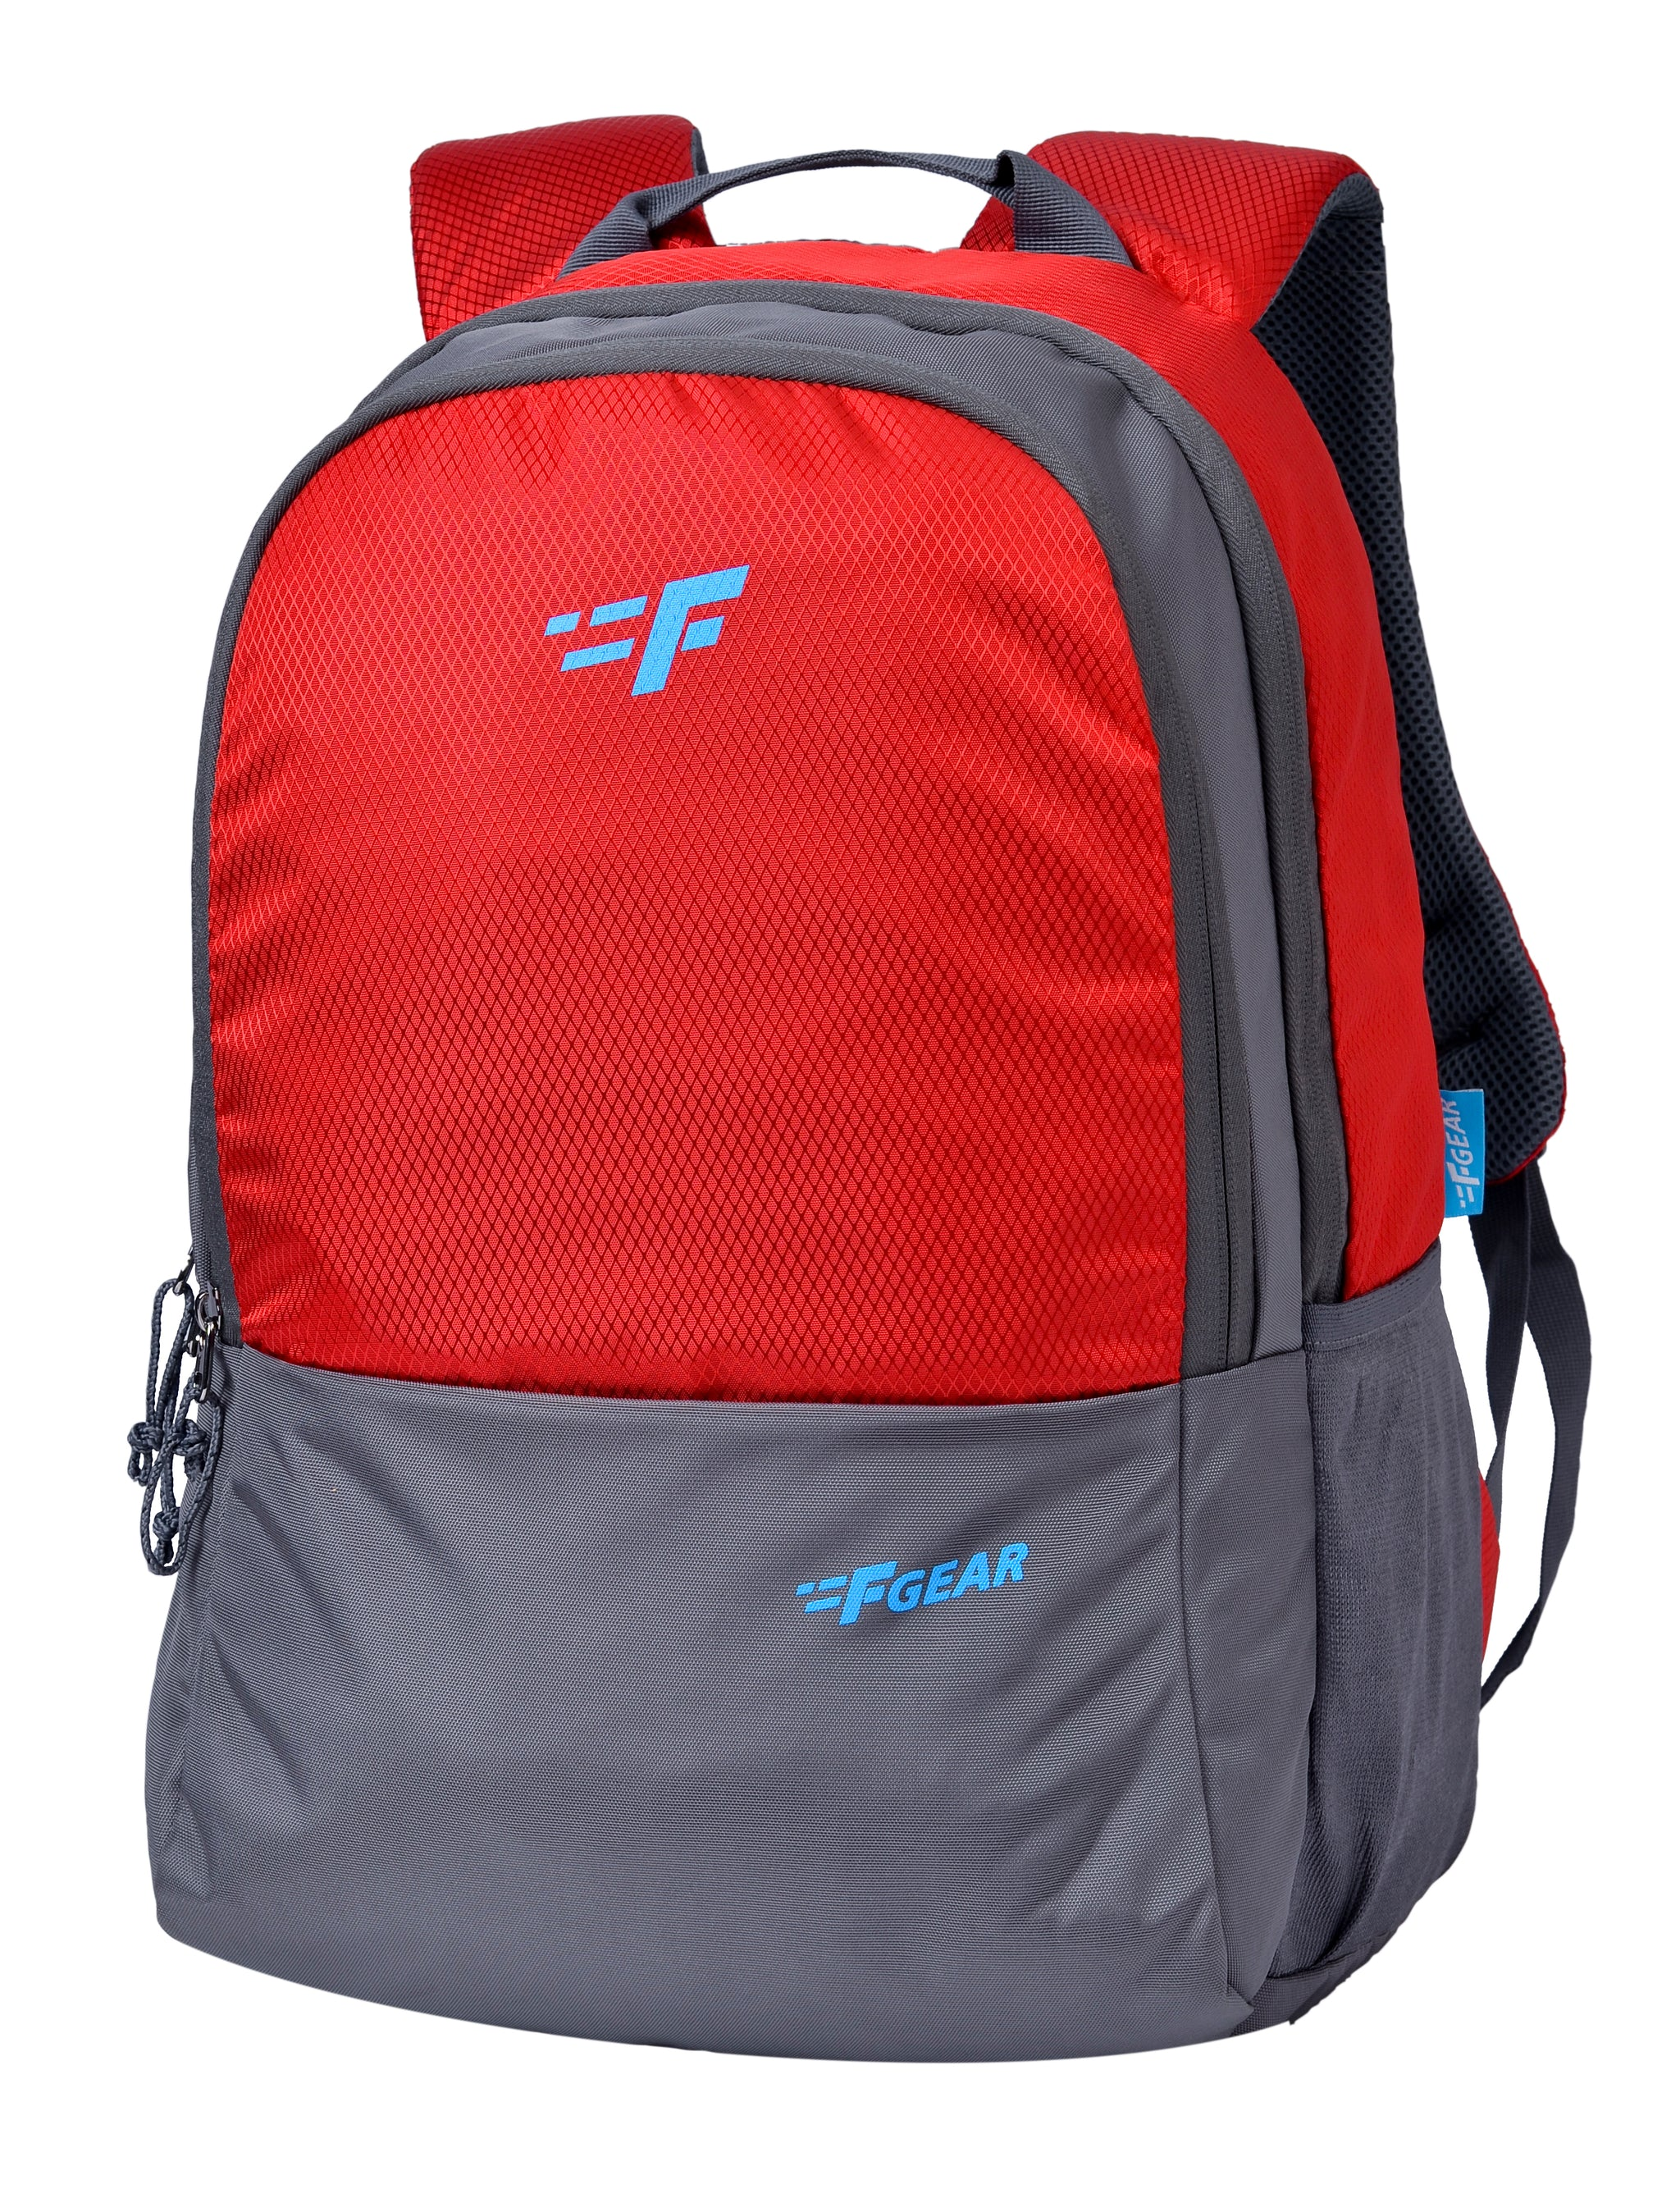 F Gear Parvis Red Diamond, Black Guc 26 Liters Backpack (2958)